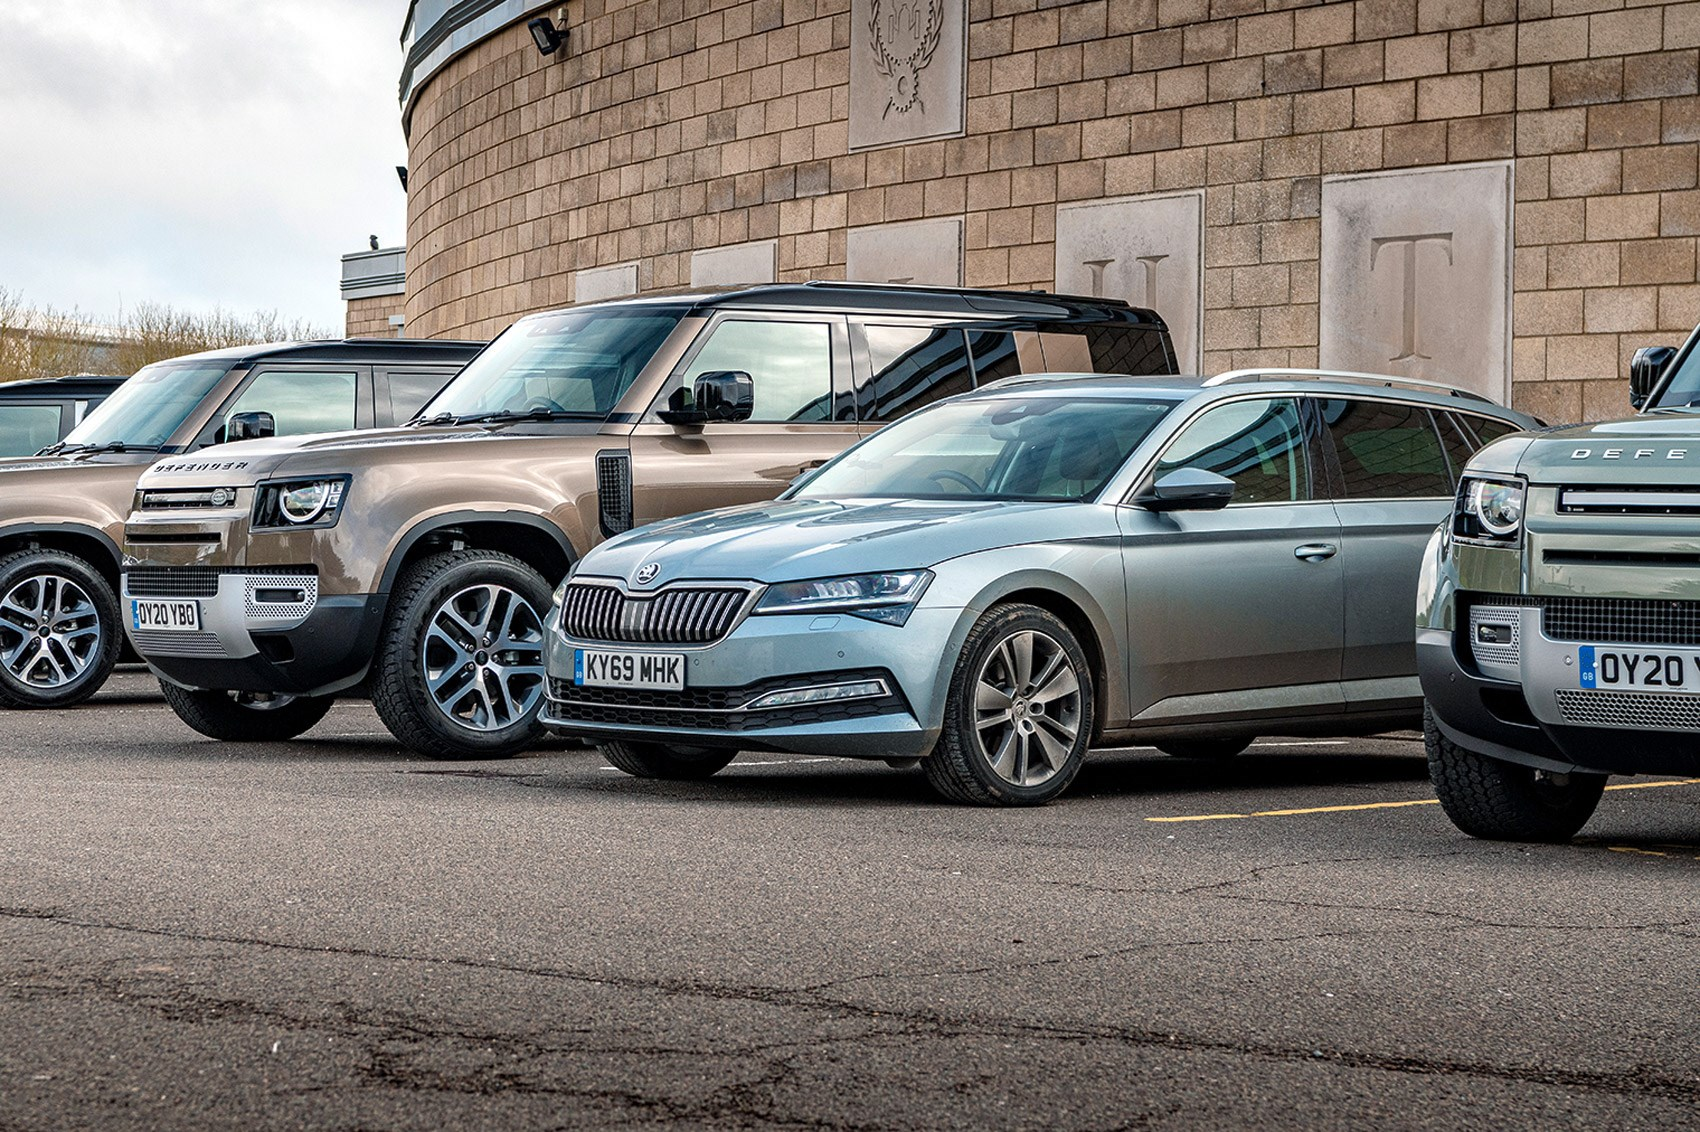 Our Skoda Superb Estate: where's the ambition?